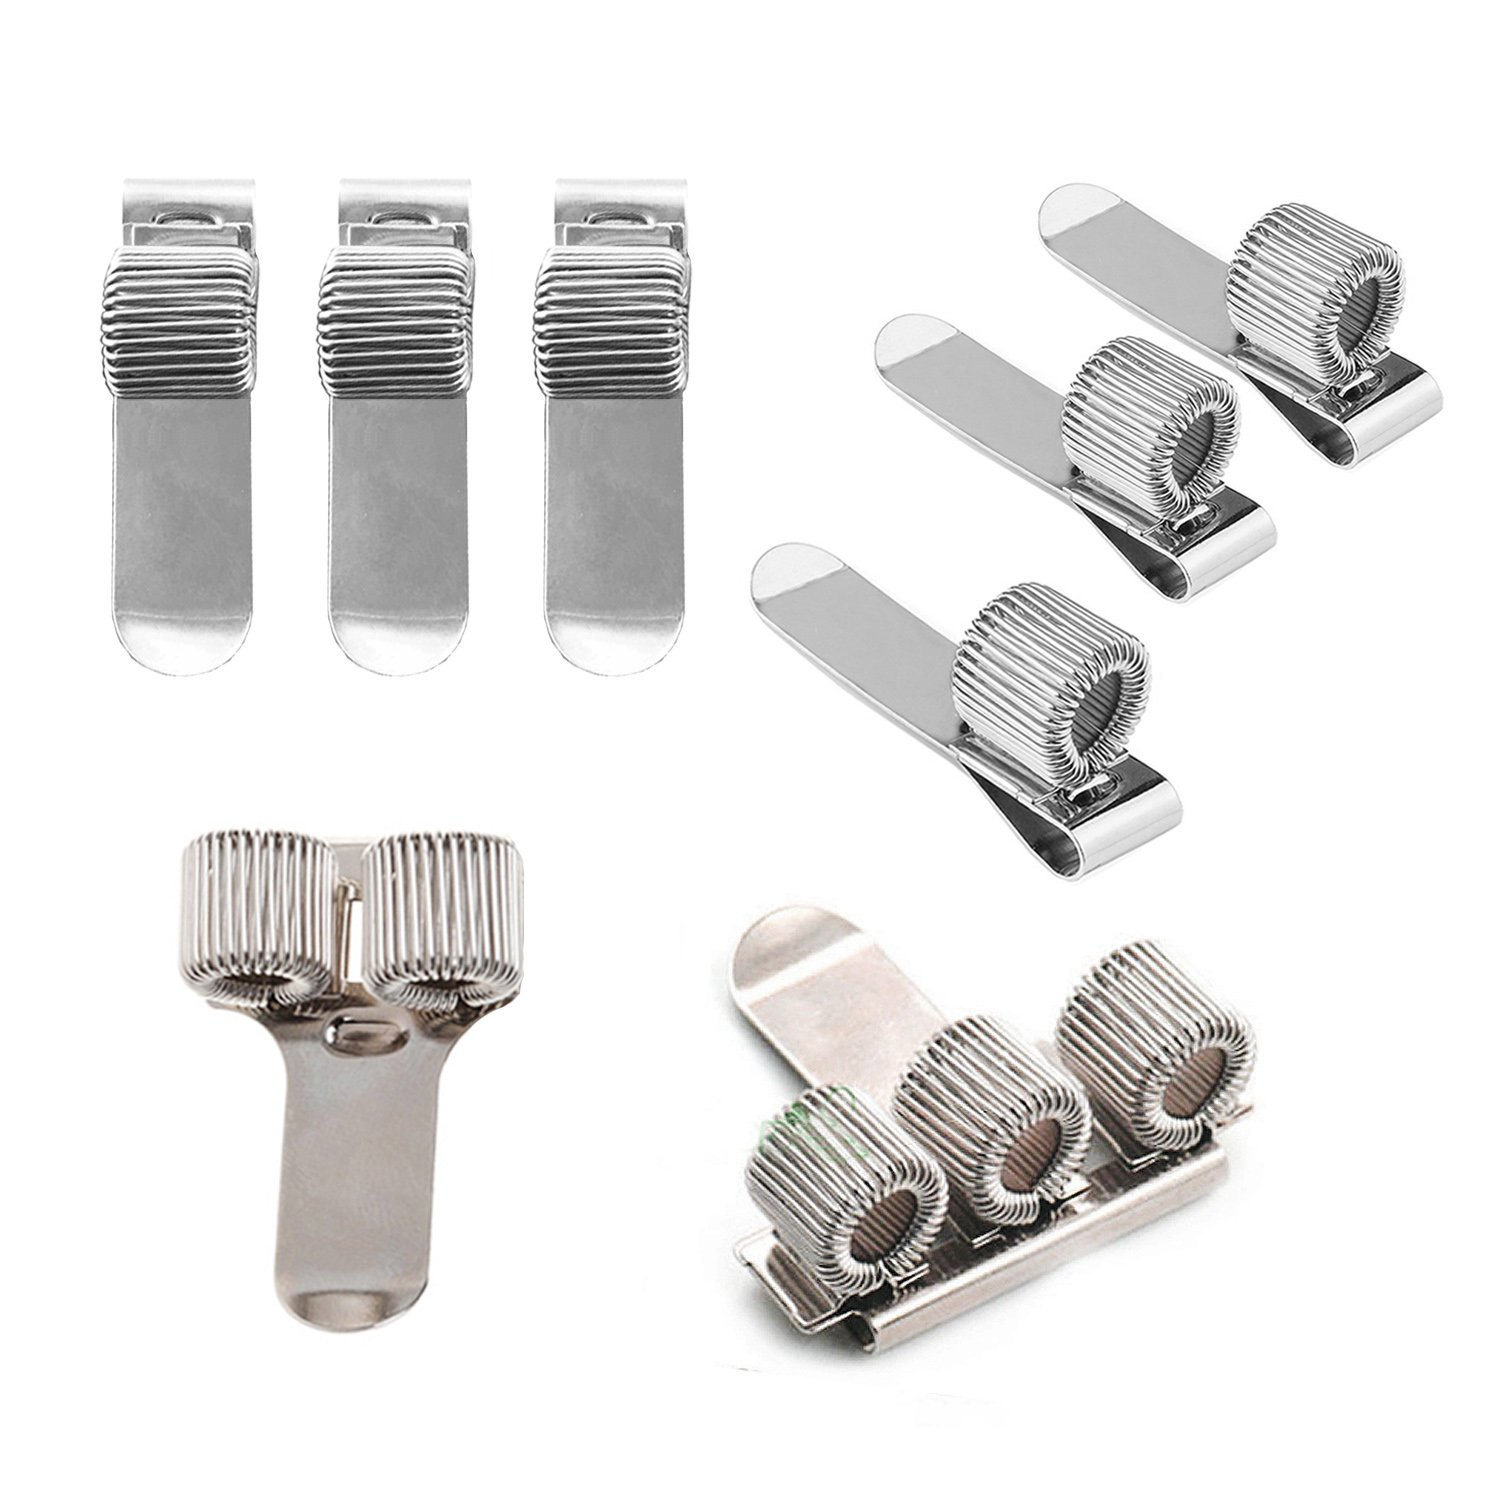 Stainless Pen Holder Clip for Notebook and Clipboard with Spring Fits Almost All Pen Size,8 Pack from BASEEING (Silver)